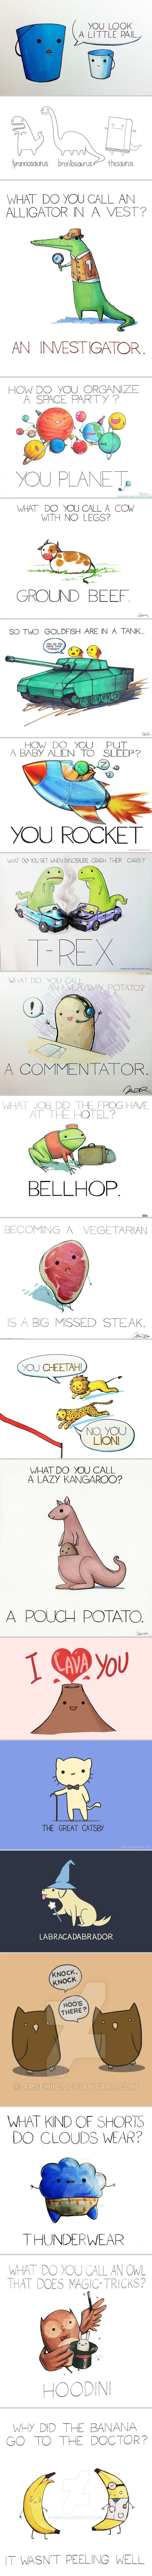 Who doesn't like a good pun? (by Arseniic) - 9GAG